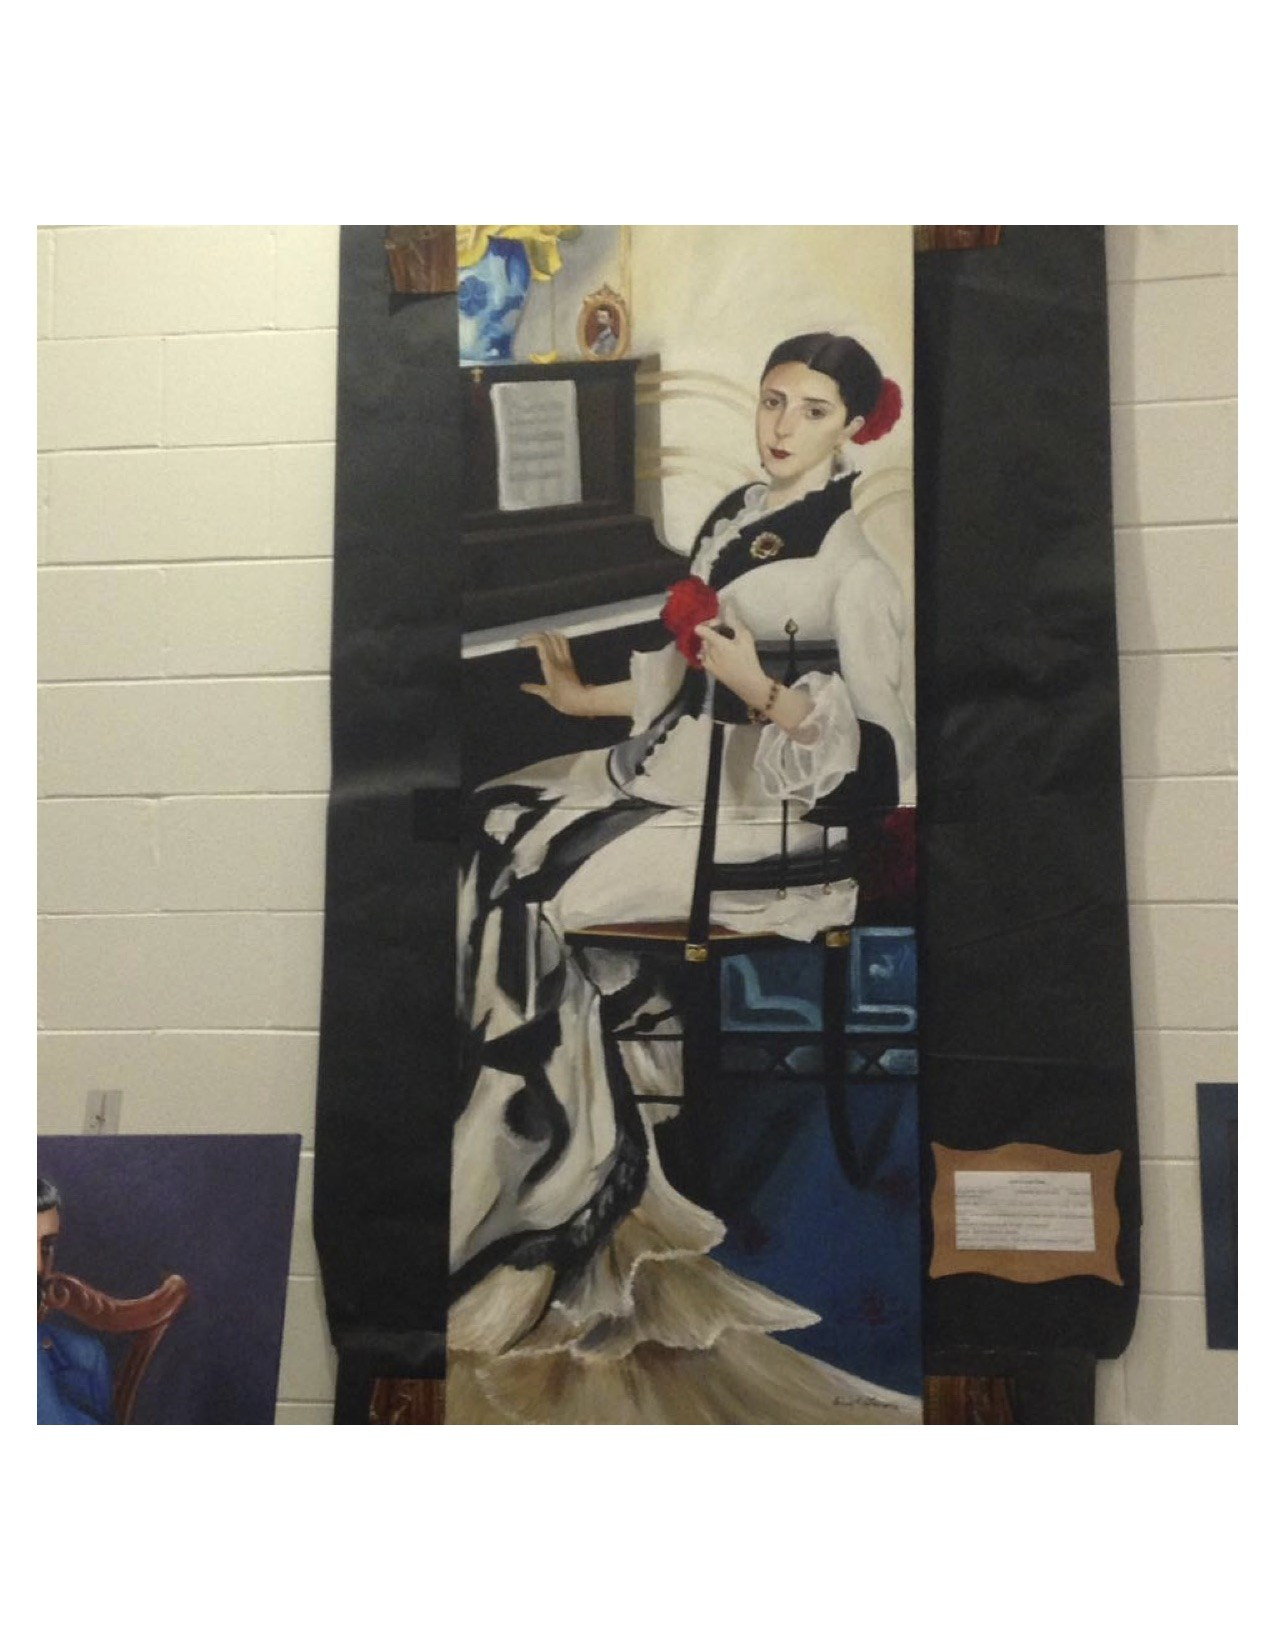 Union City High School Student artwork of an late 1800 regal women sitting at a piano